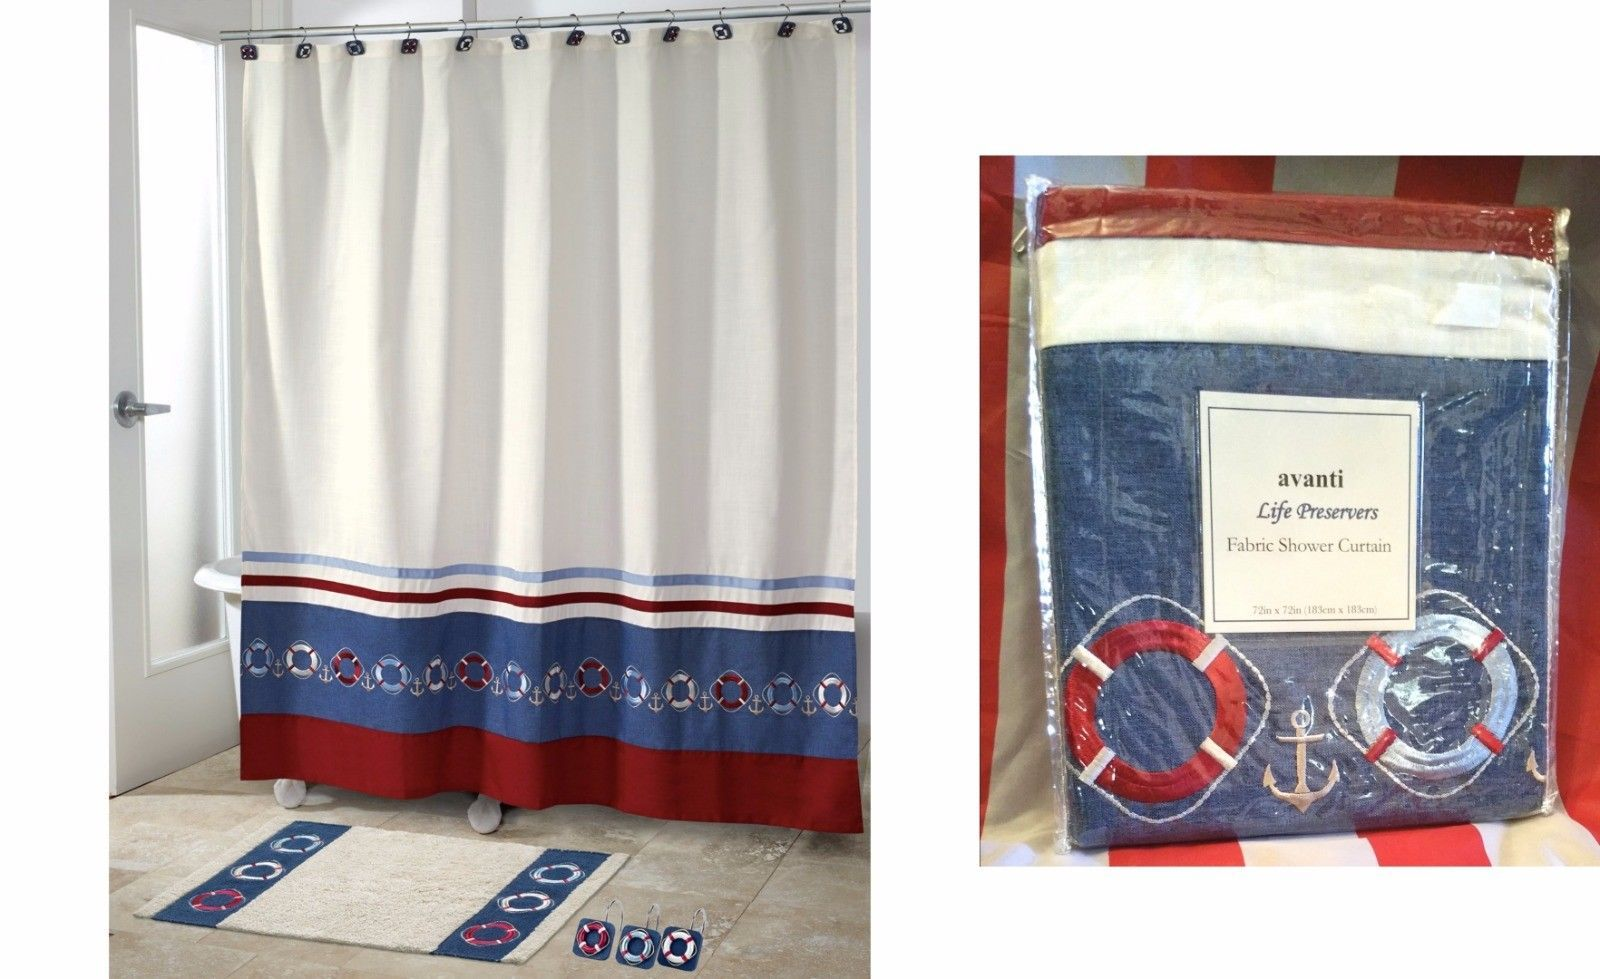 Nautical Fabric Shower Curtains Avanti Life Preservers Nautical Fabric And 18 Similar Items